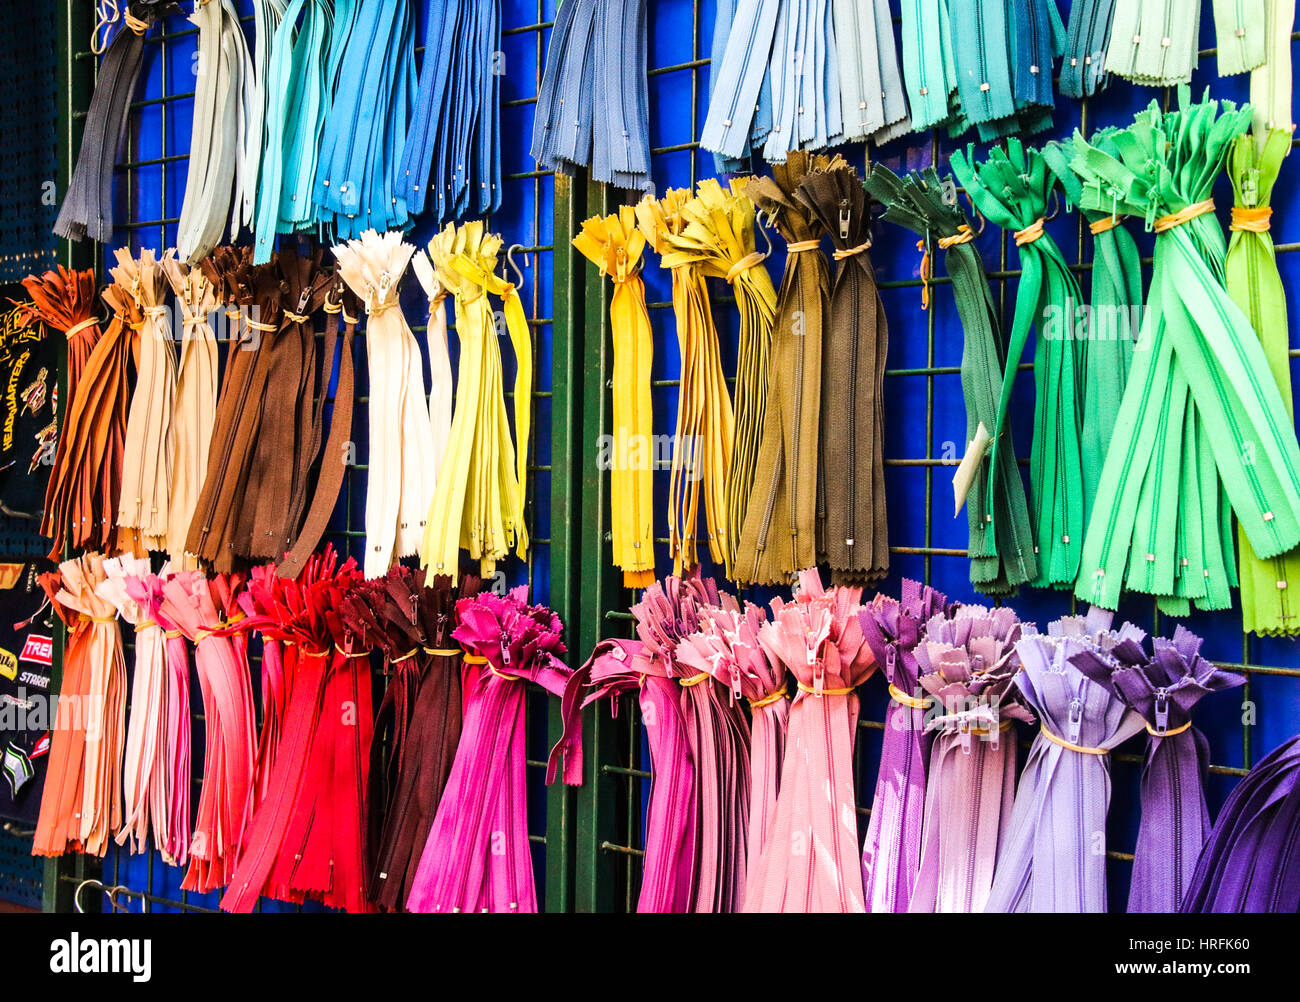 Colored Zippers at the Market in Split - Stock Image